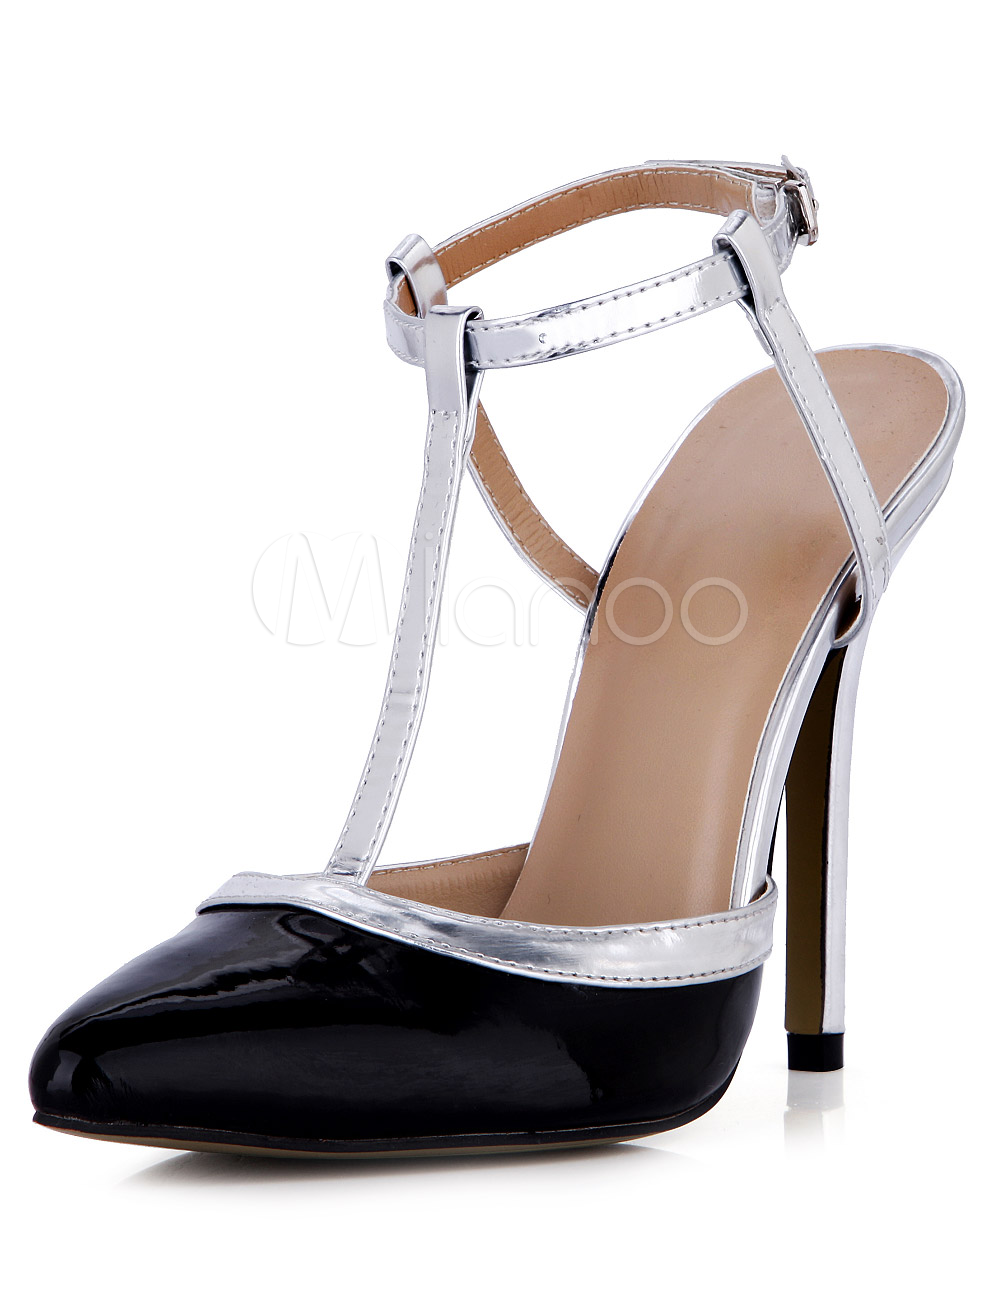 Buy Sexy Black Stiletto Heel Patent PU Womens Pointy Toe Shoes for $55.99 in Milanoo store